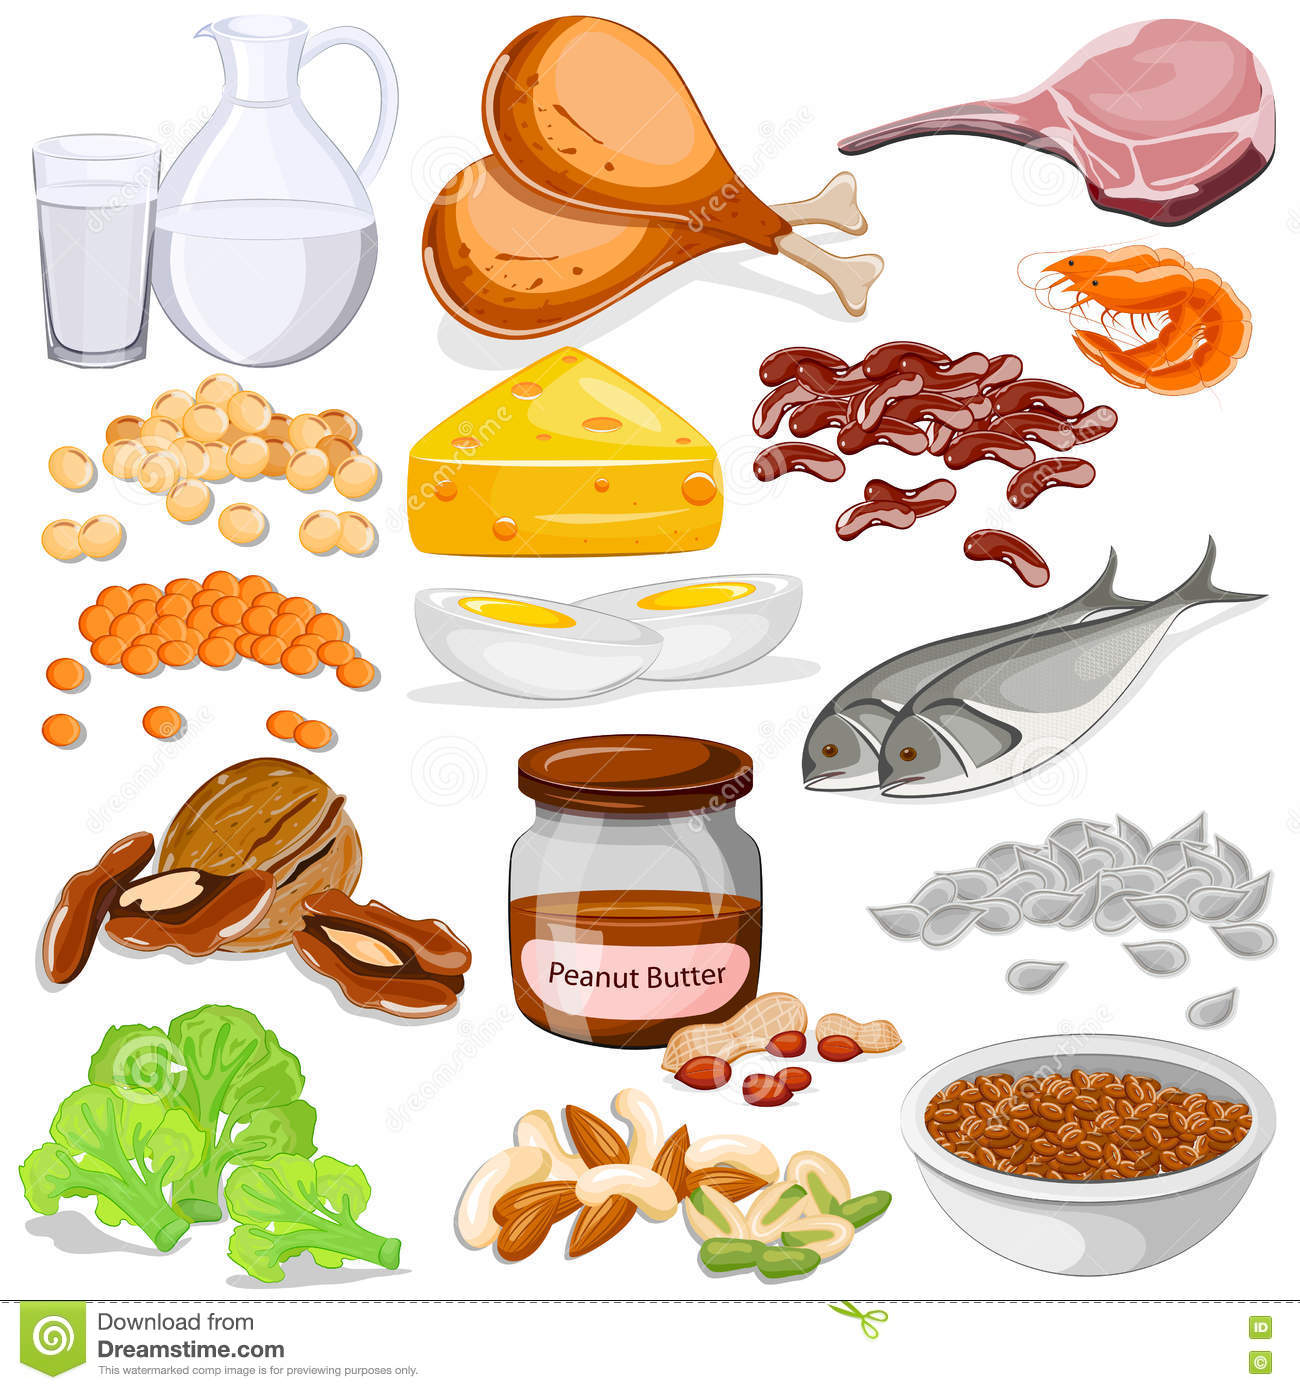 Food source clipart 20 free Cliparts | Download images on ...